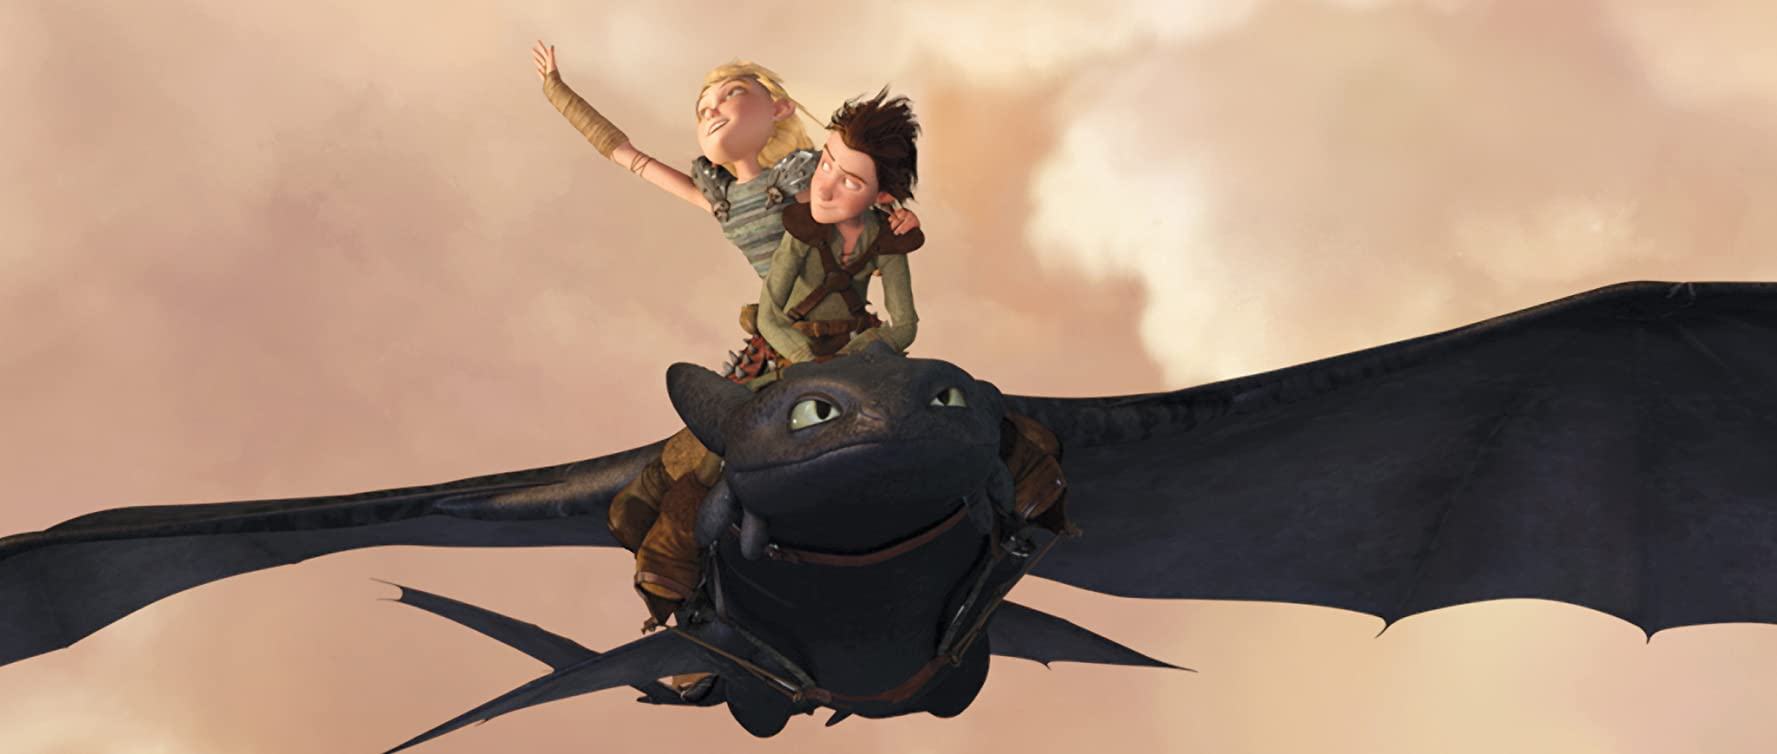 Hiccup and Astrid in How to Train Your Dragon by DreamWorks